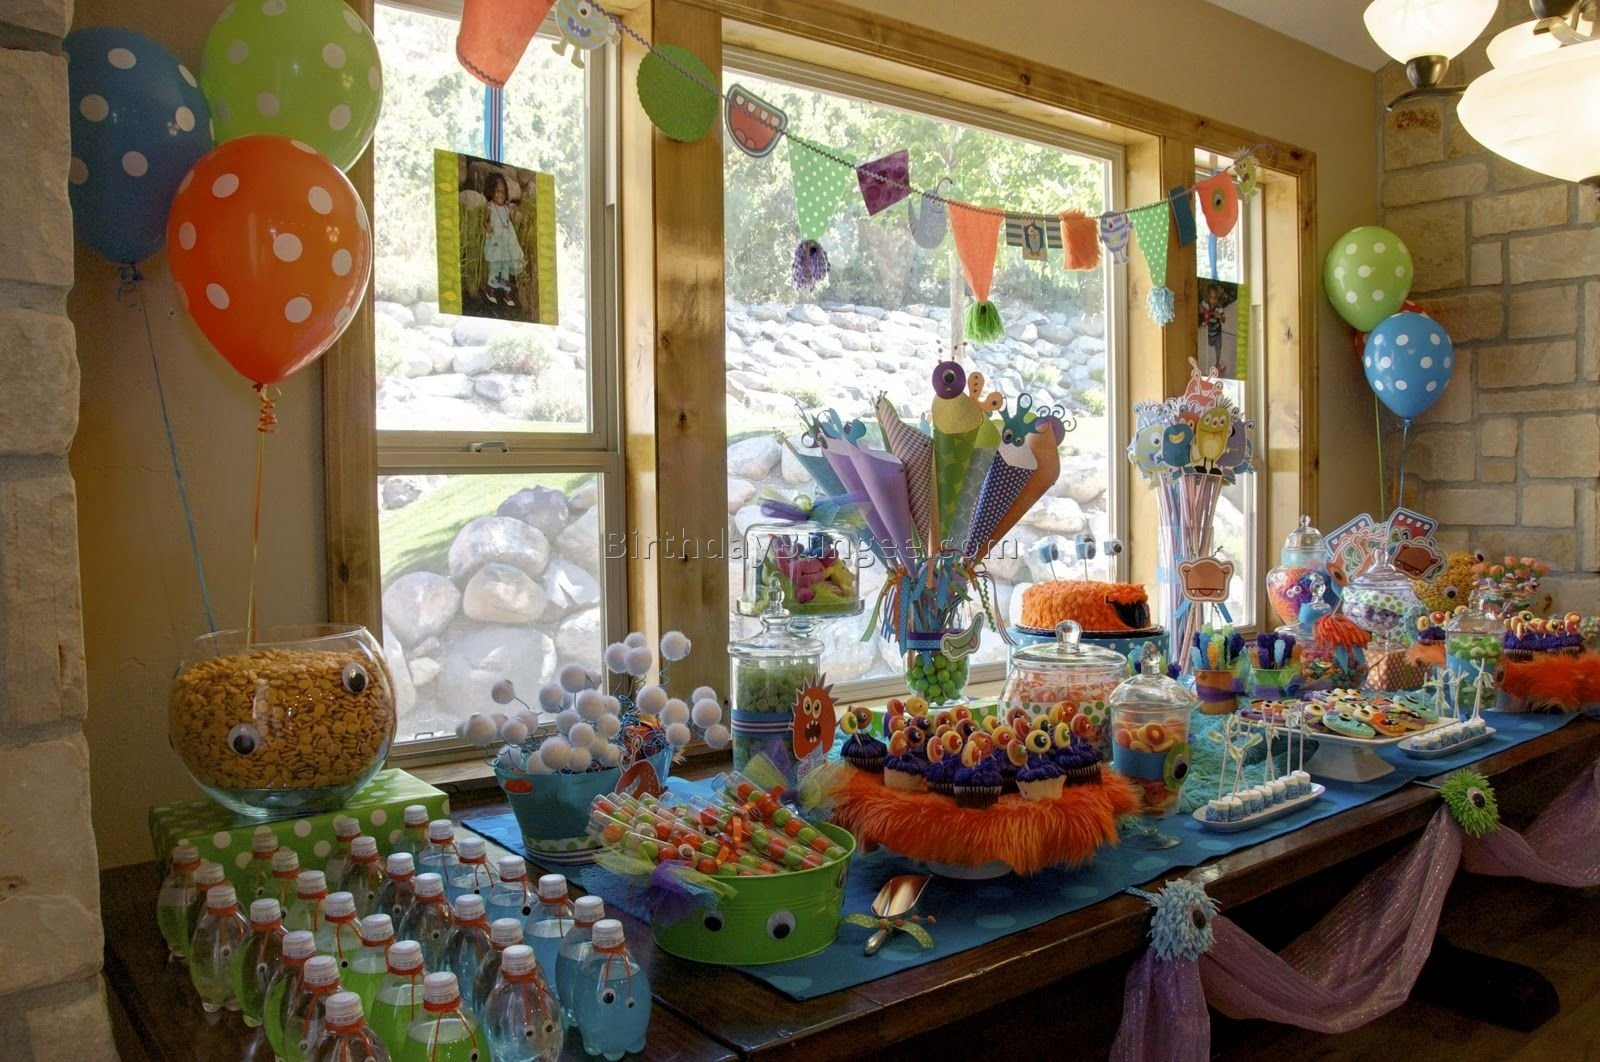 10 Lovable Birthday Ideas For 6 Year Old Boy themes birthday 6 year old boy birthday party ideas at home in best 30 2021